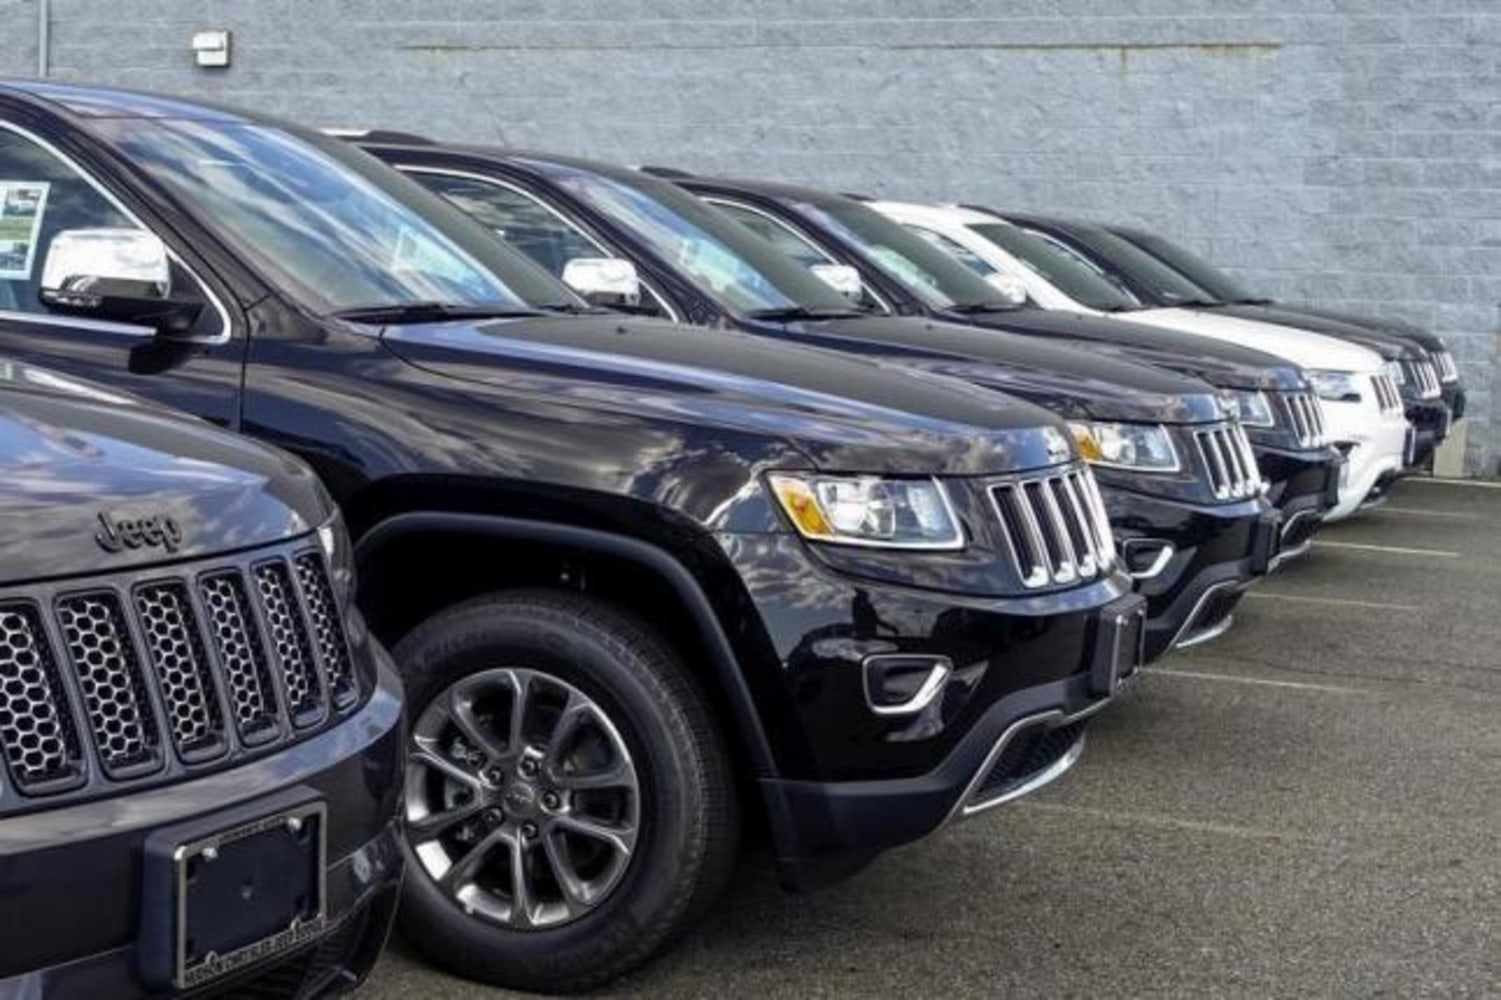 EPA to Accuse Fiat Chrysler of Using Cheating Software in Diesels